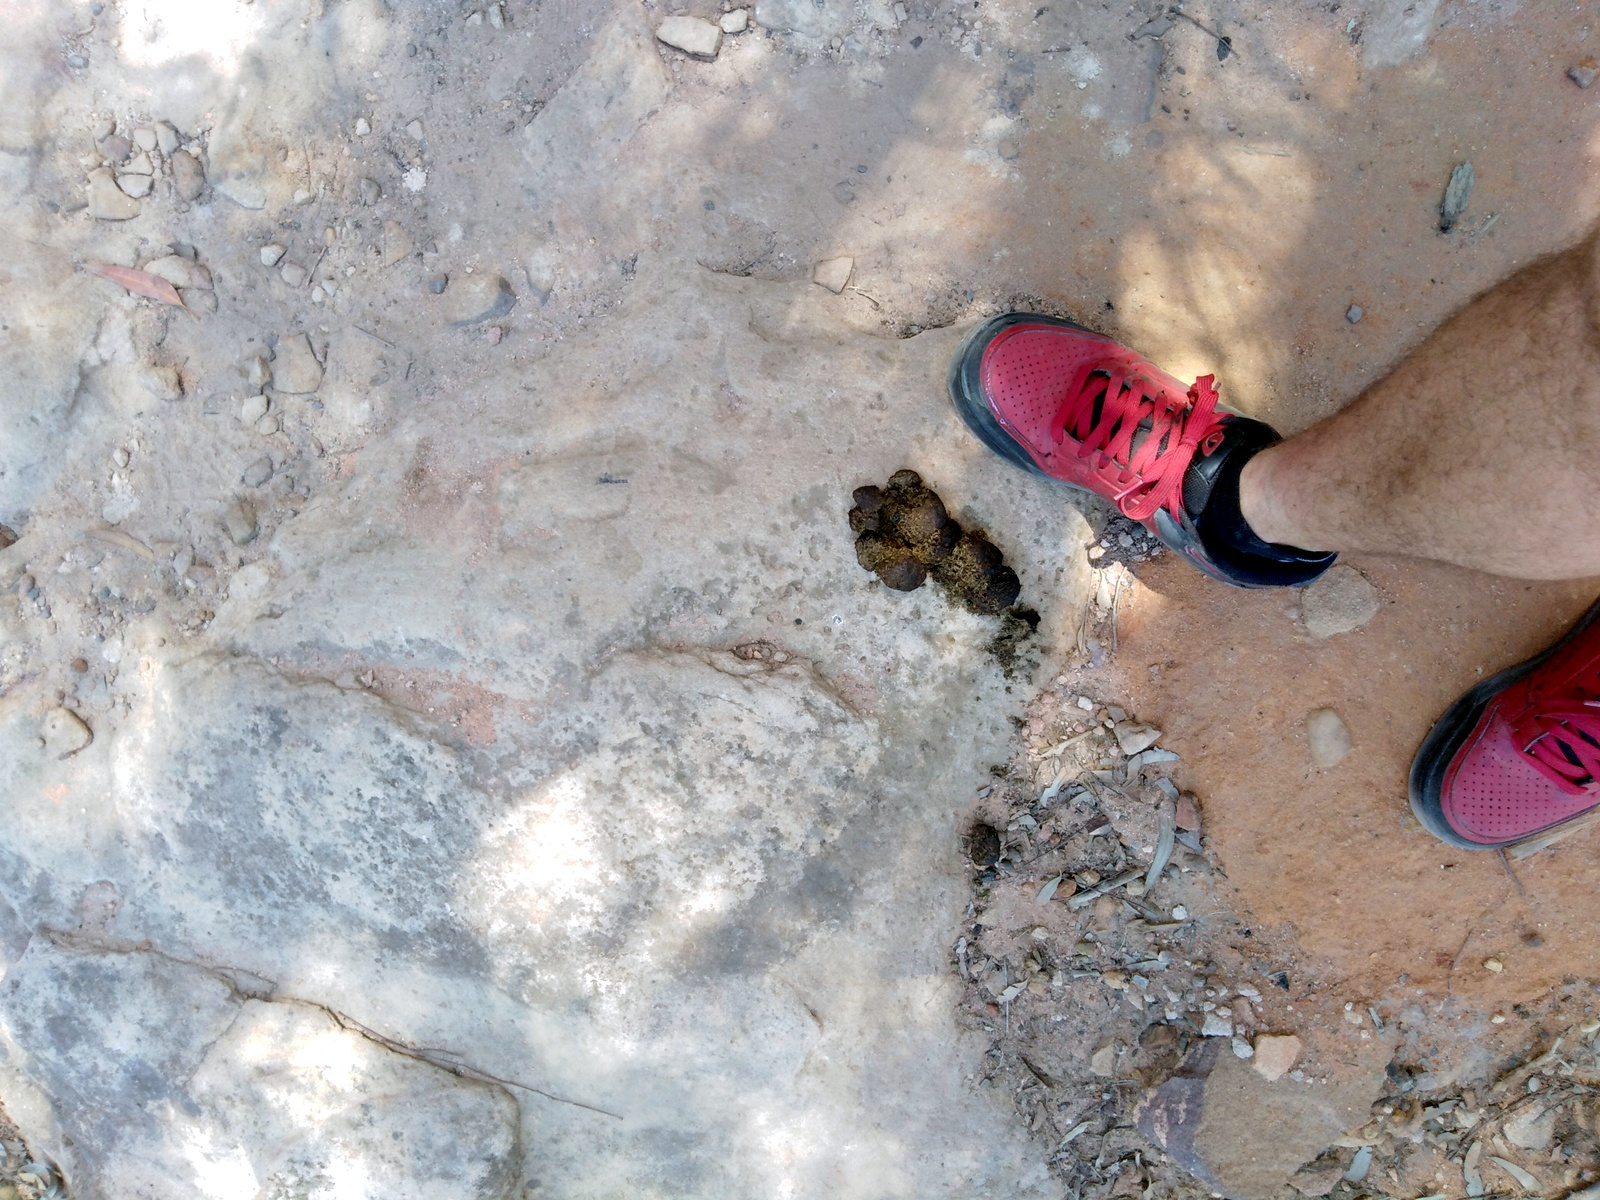 Wombat poo at Sandstone Caves in Pilliga Forest